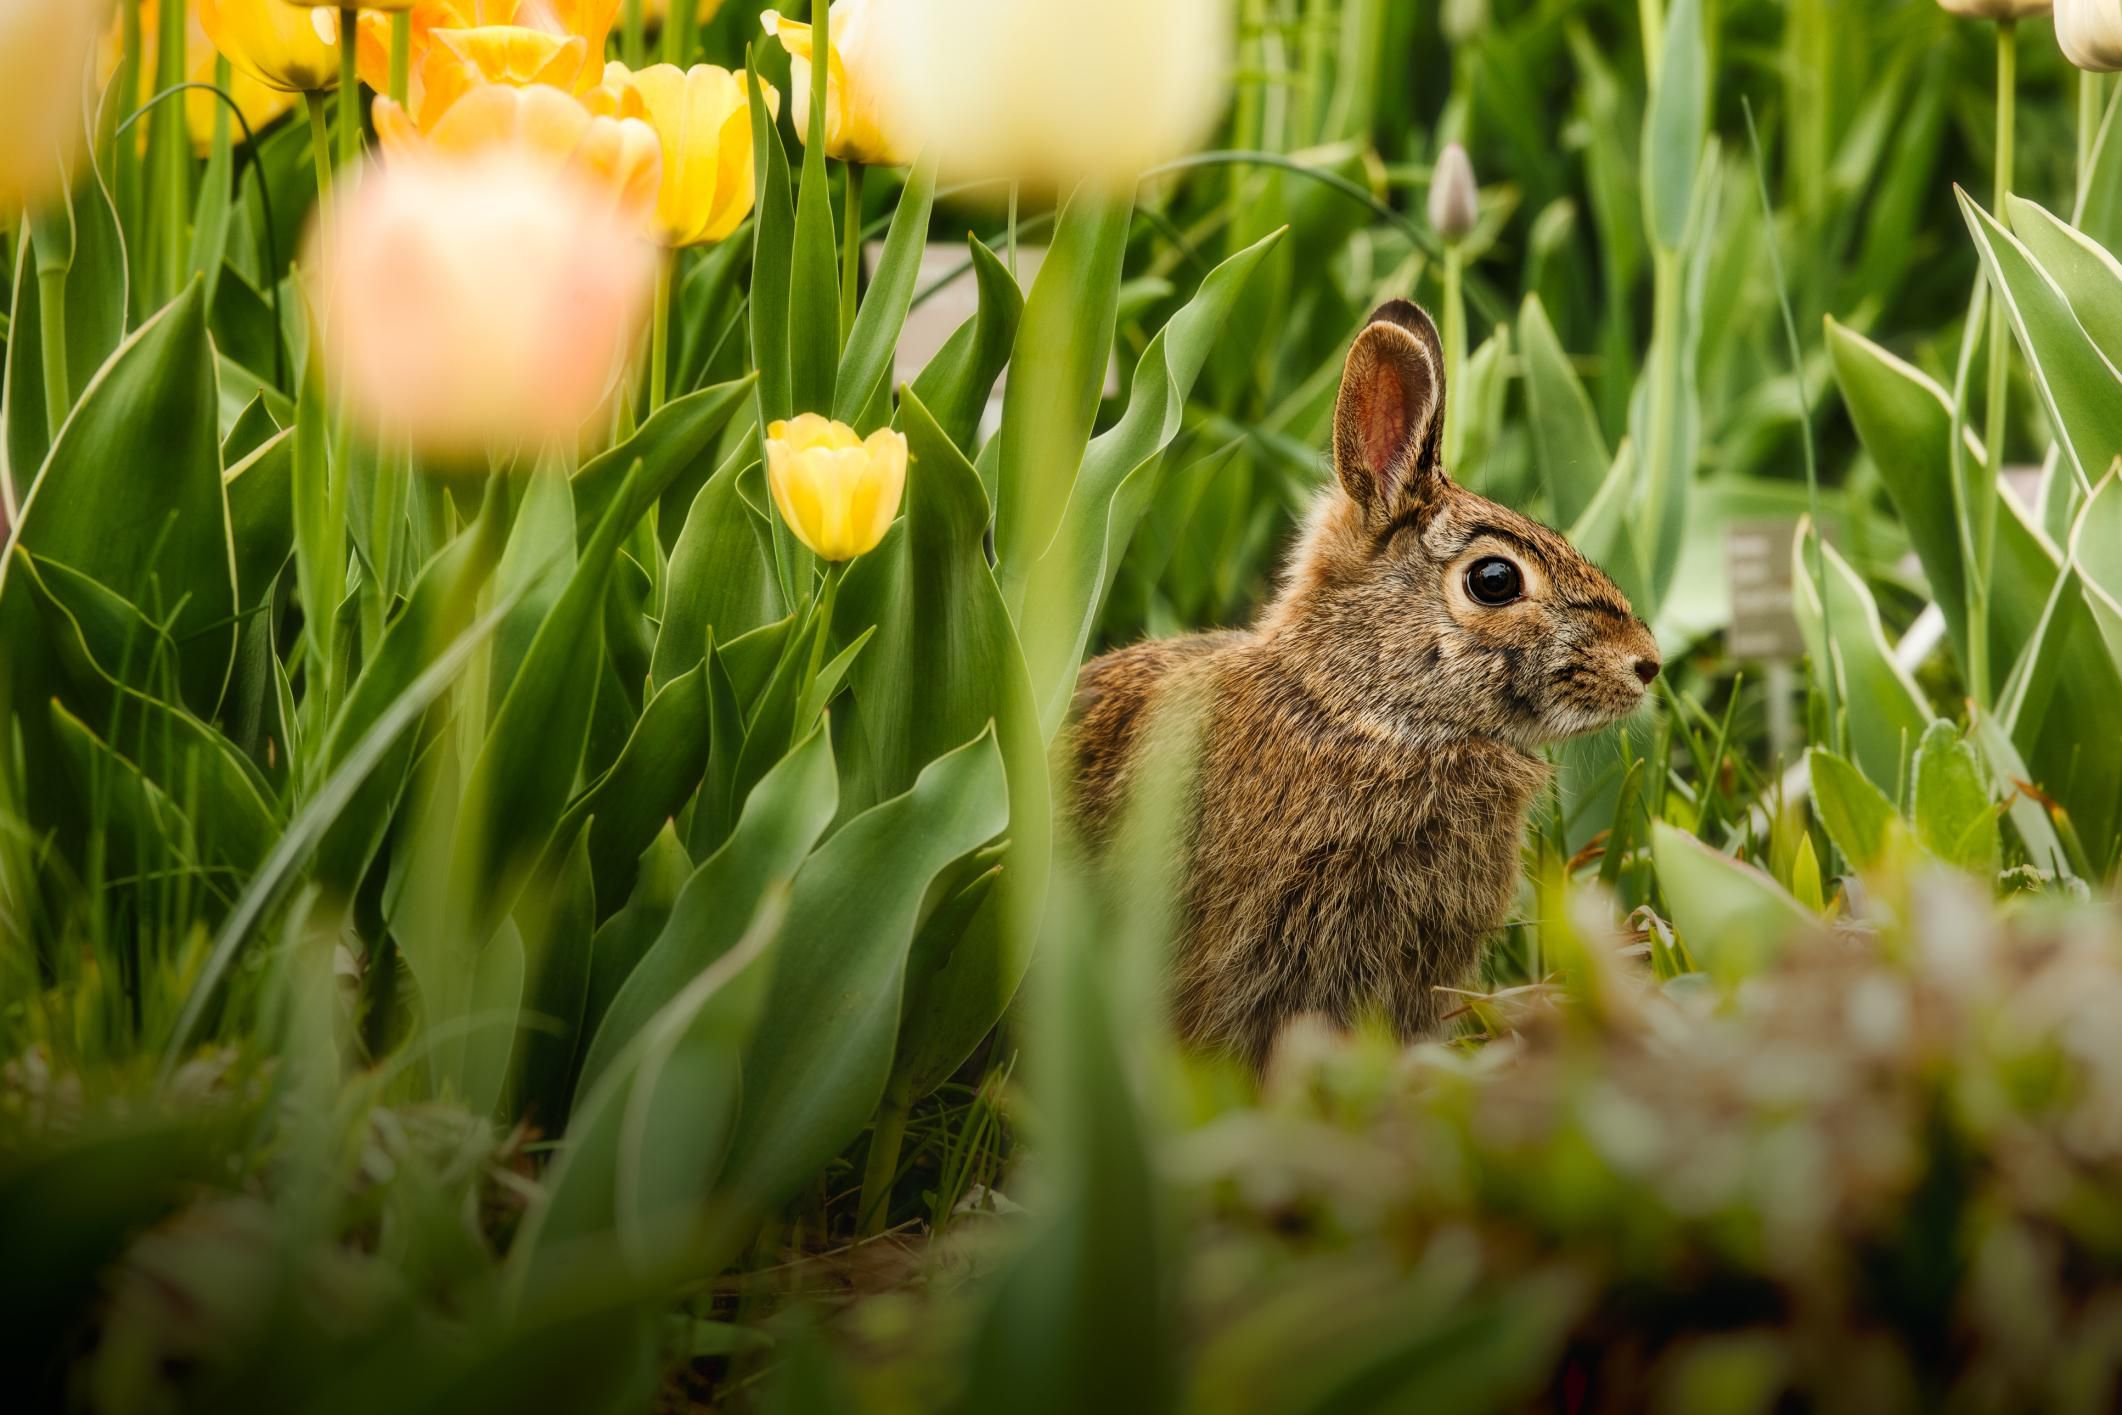 3 ways to keep rabbits out of the garden